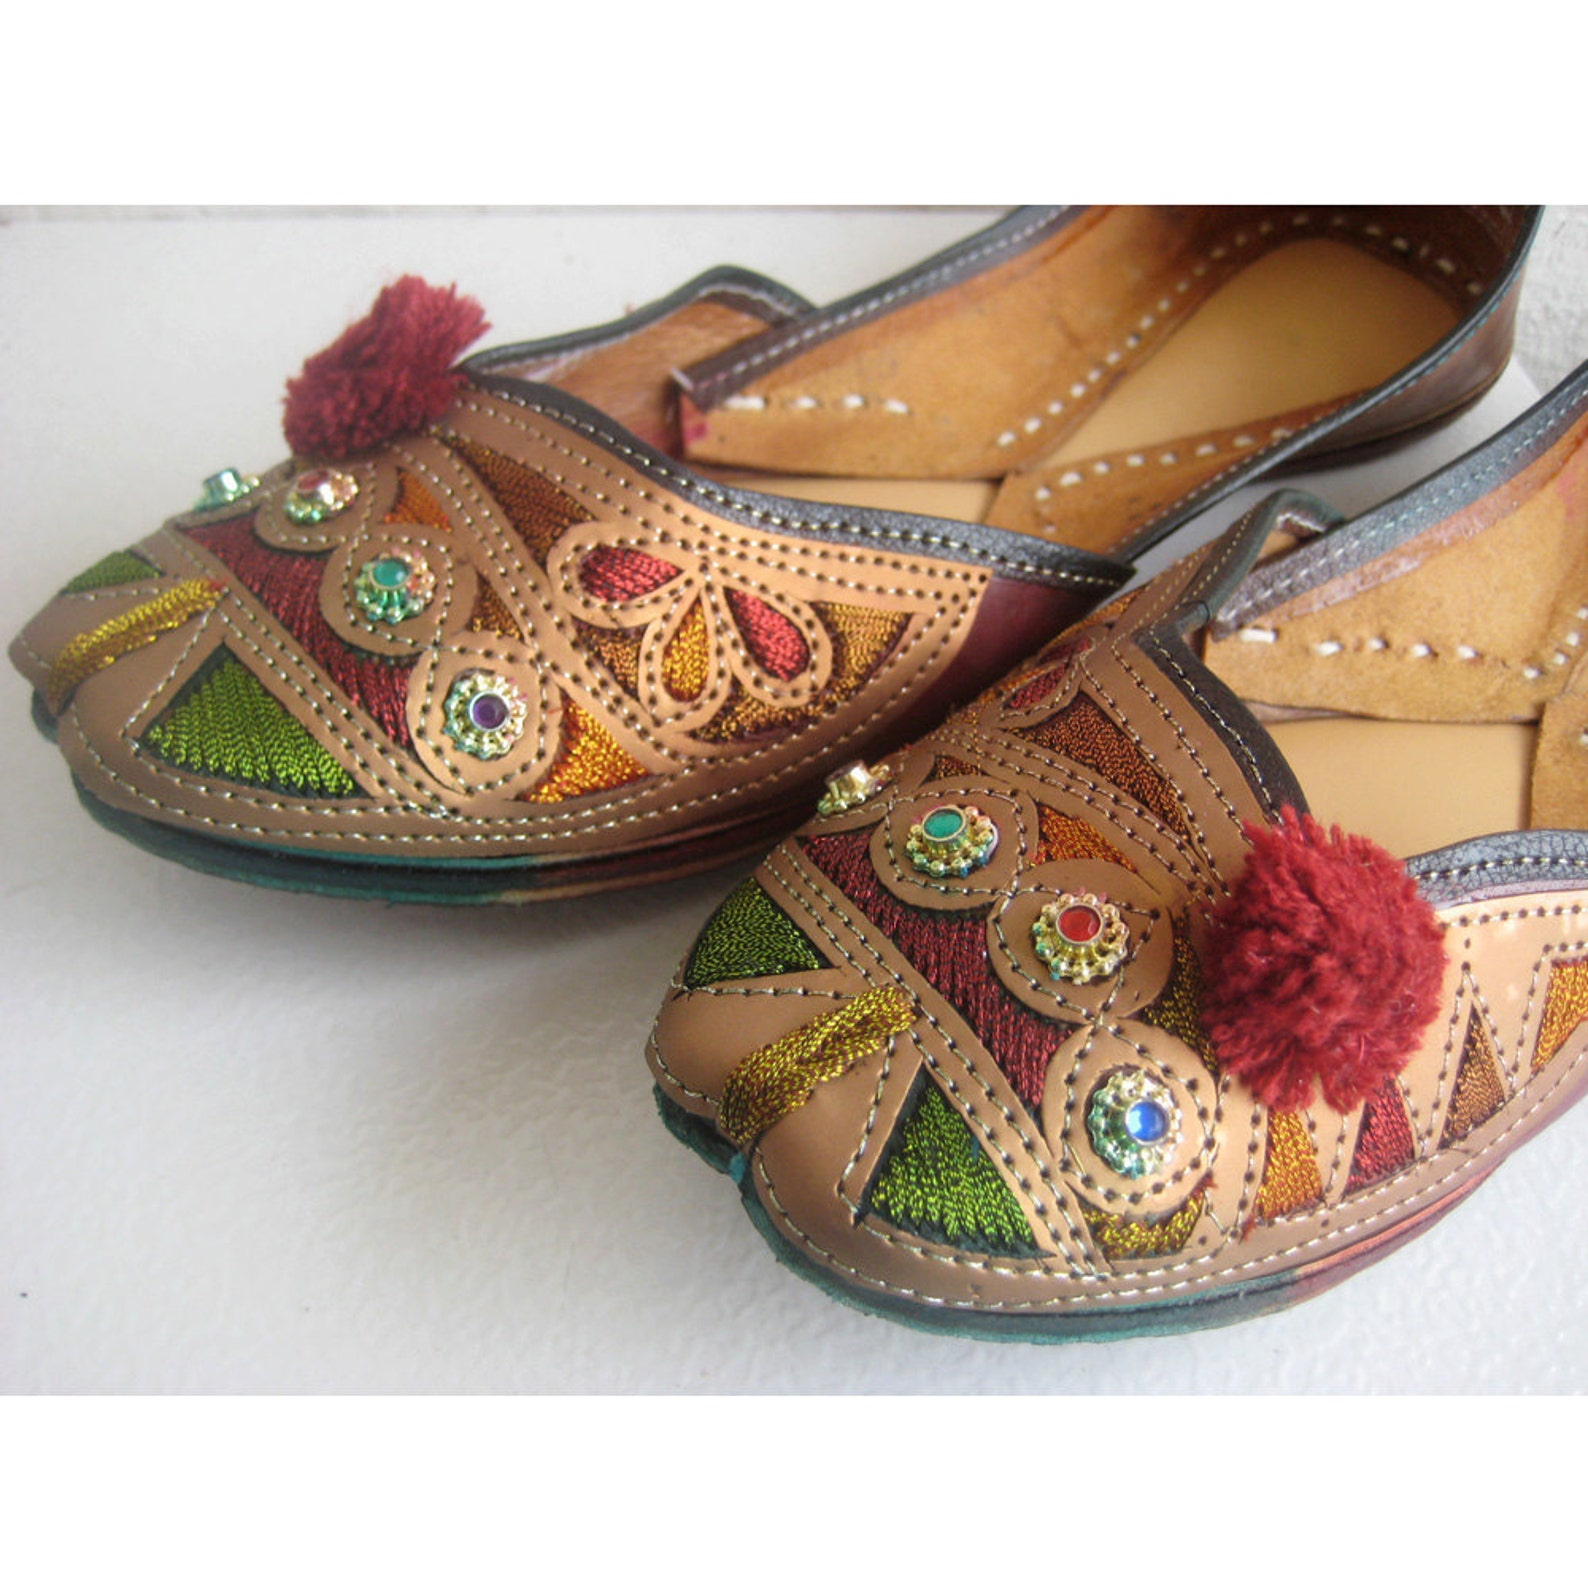 us size 9 - copper ballet flats/handmade indian designer women shoes or slippers/sequins shoes/maharaja style women jooties